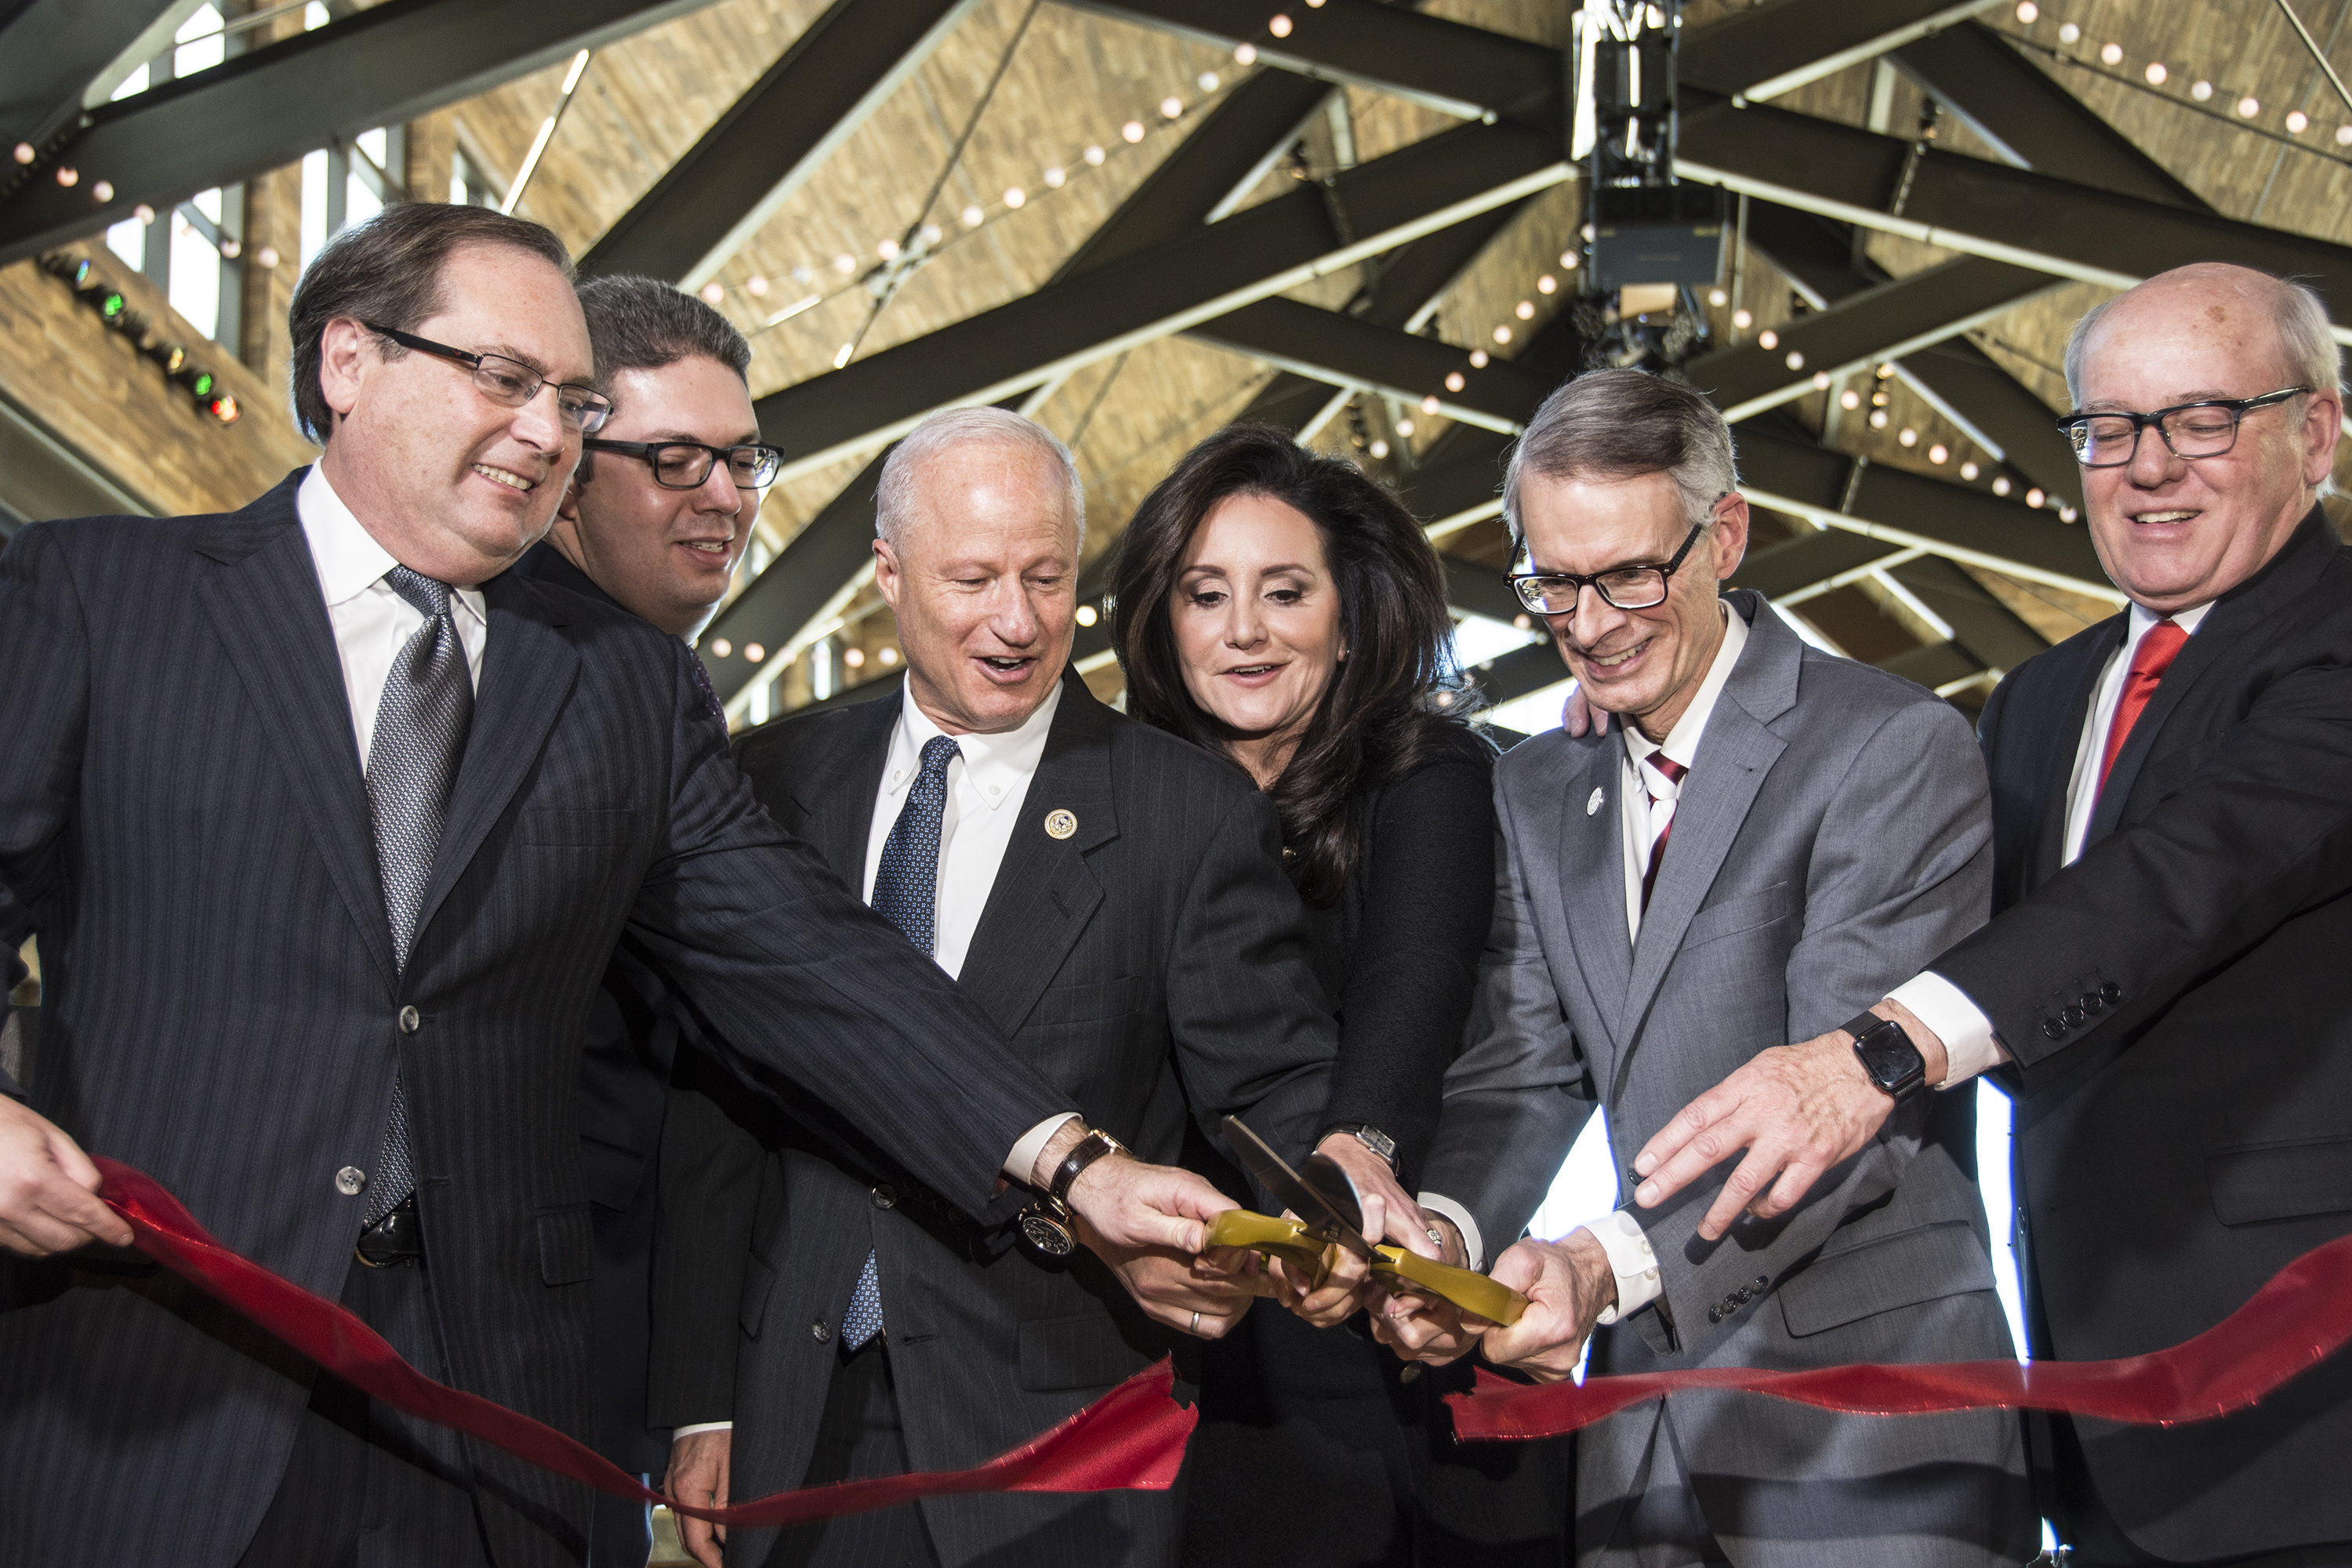 """<p class=""""normal"""">The Gaylord Rockies Resort and Convention Center just southwest of Denver International Airport opened its doors on Tuesday, Dec. 18, 2018 with a ribbon cutting. Left to right: Ira Mitzner, Andrew Holm, Rep. Mike Coffman, Wendy Mitchell, Aurora Mayor Bob LeGare and Colin Reed.</p>"""